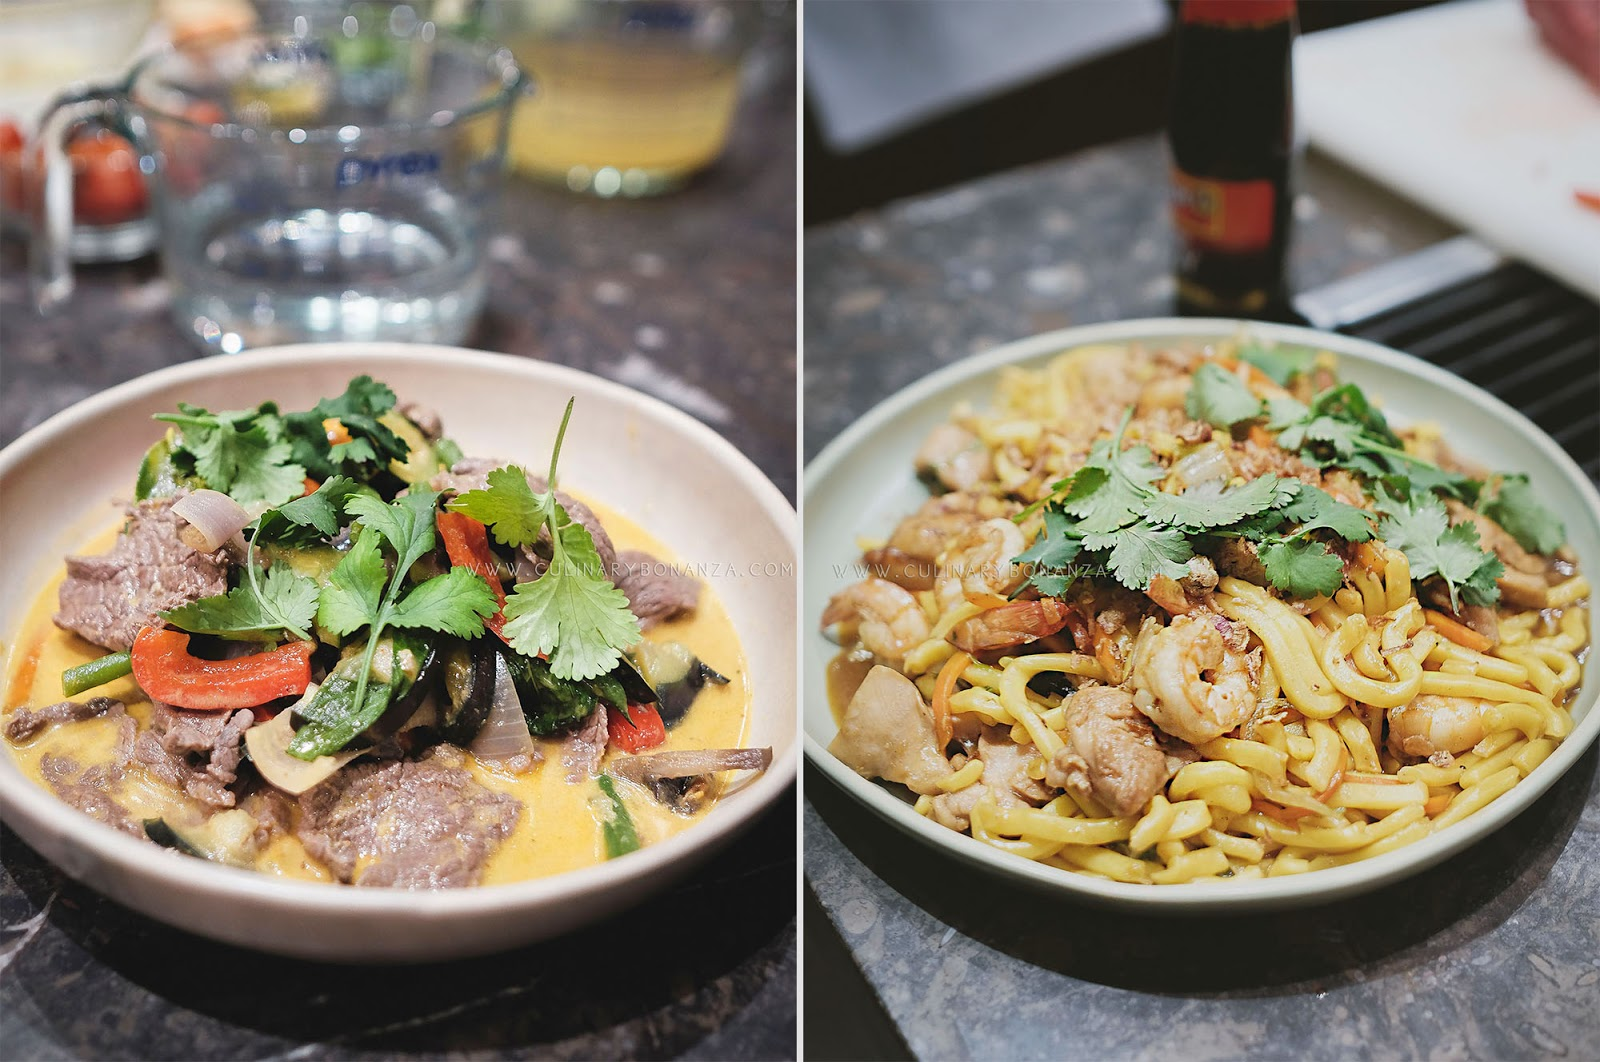 Red Beef & Vegetables Curry (left) and Chicken & Prawn Hailam Noodles (right)-(www.culinarybonanza.com)